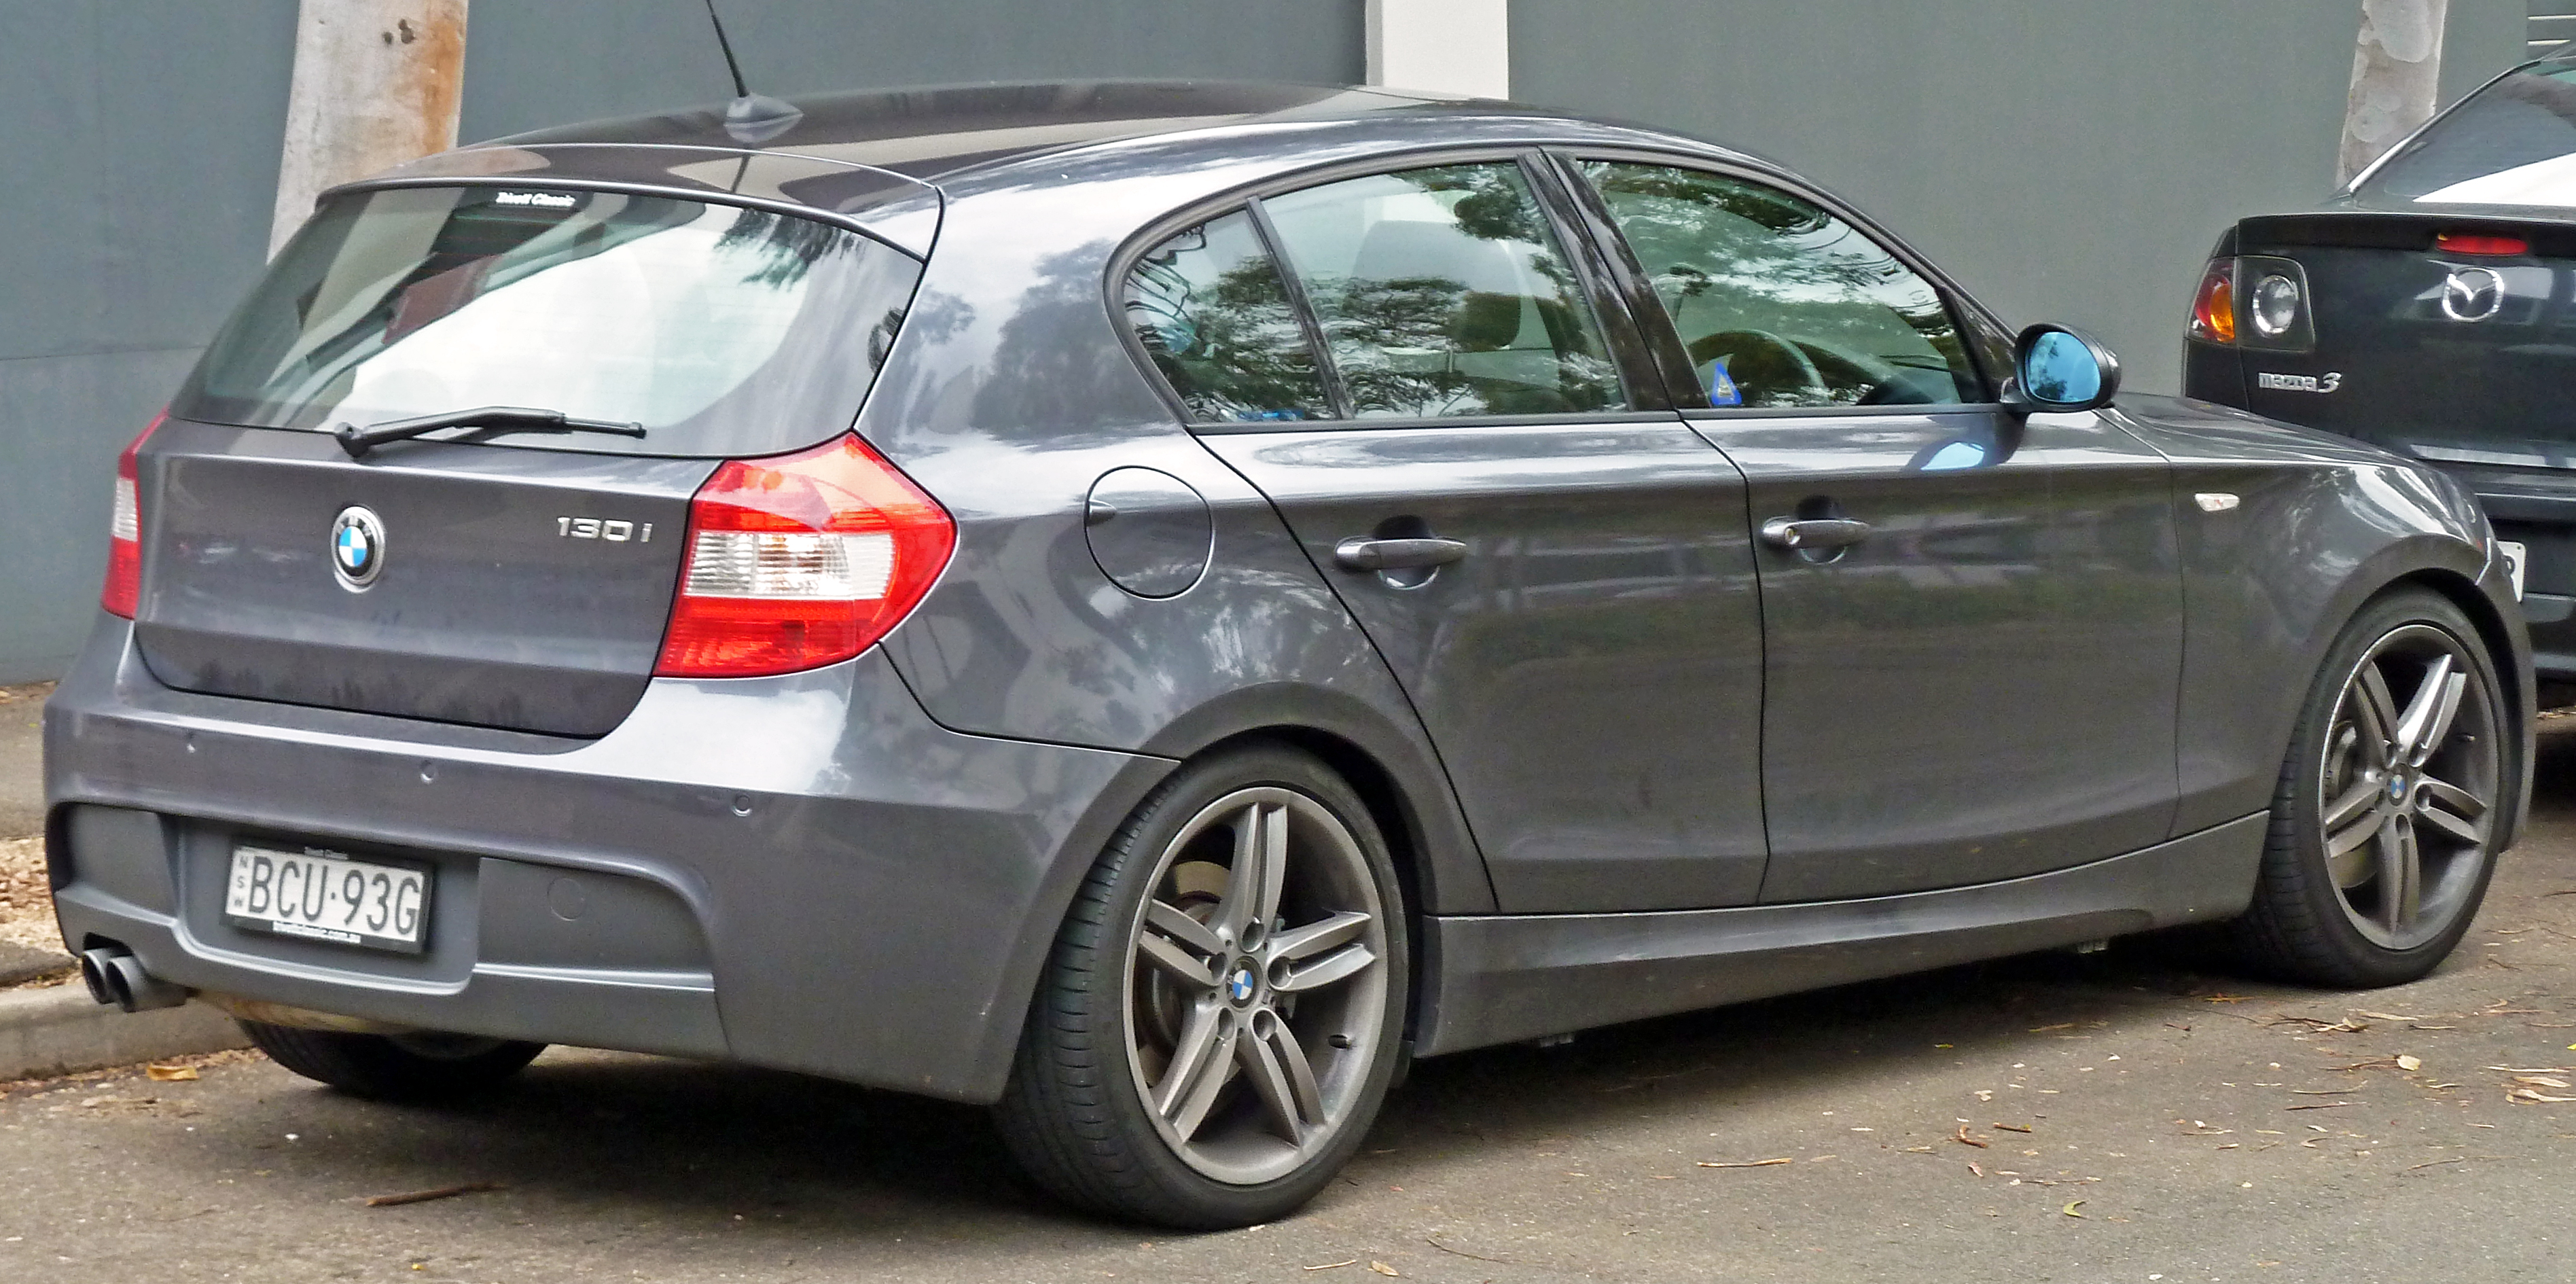 bmw 1er (e87) 2014 pictures